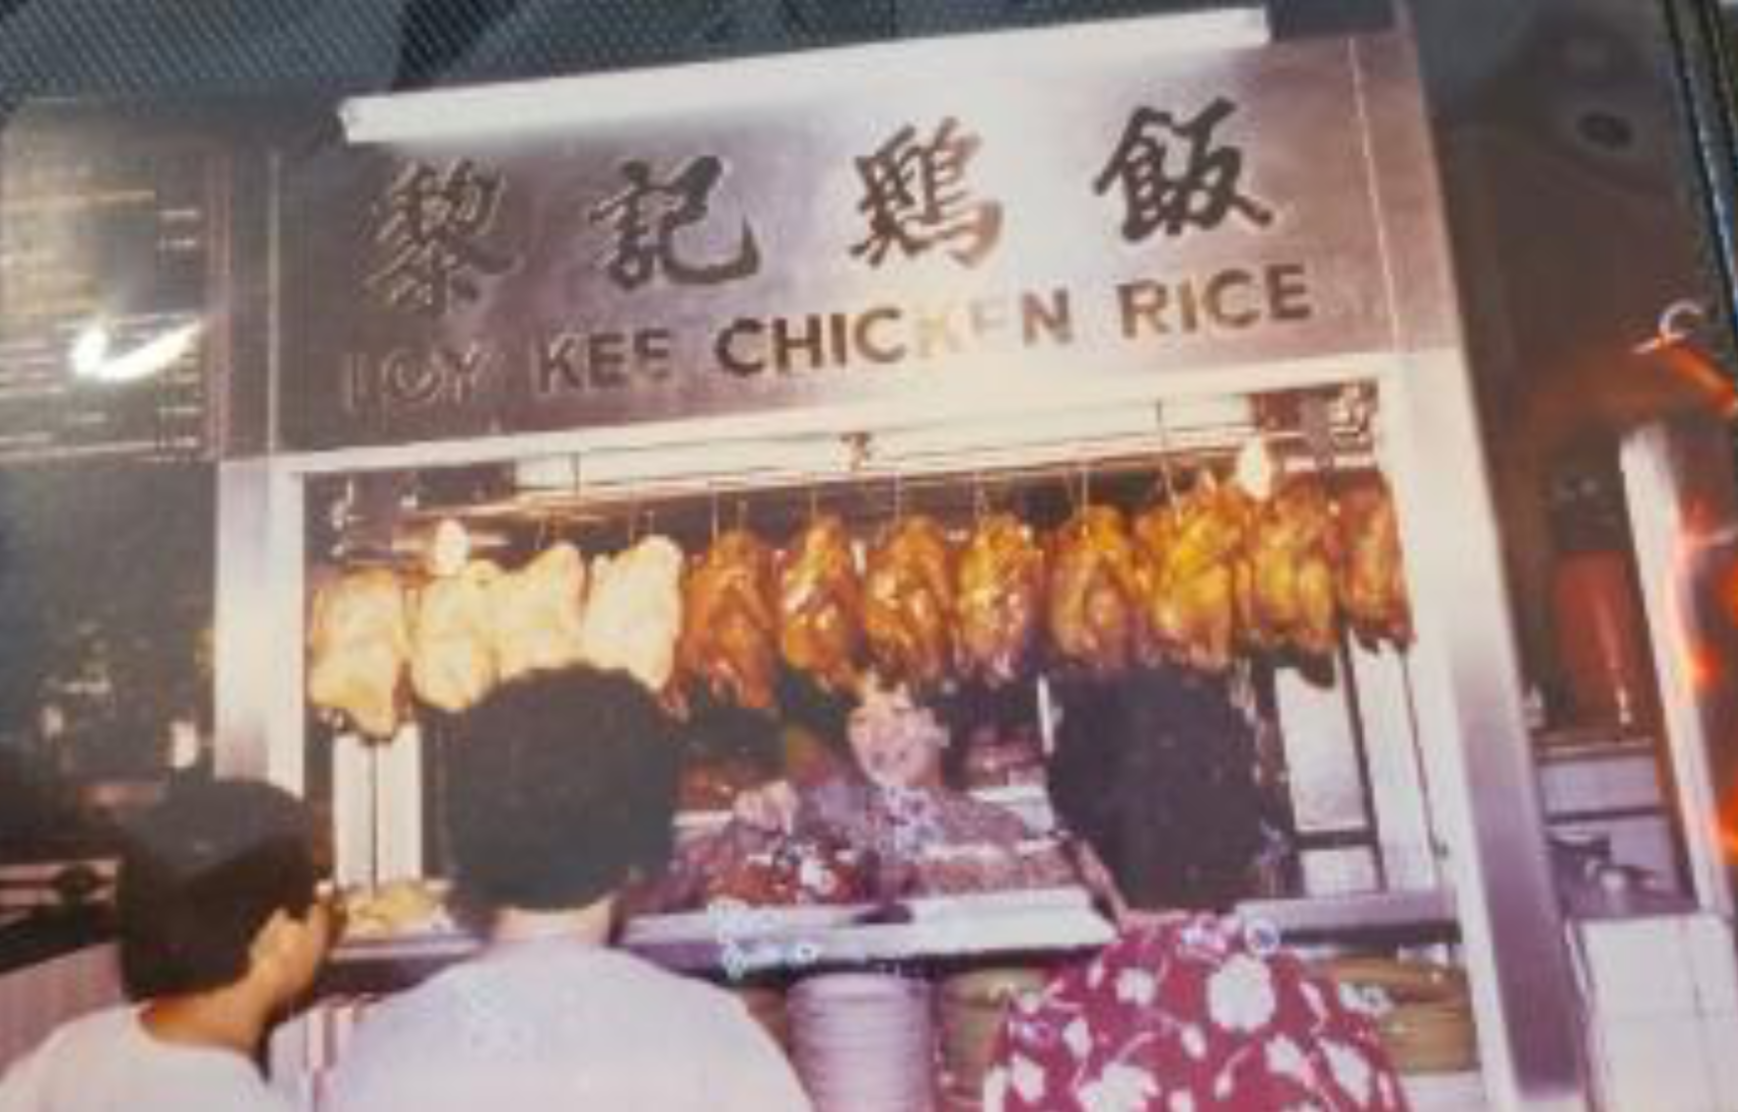 From Market Stall to Restaurant; Loy Kee Best Chicken Rice has been selling traditional Hainanese chicken rice in the Balestier area since 1953. Photo courtesy: NHB